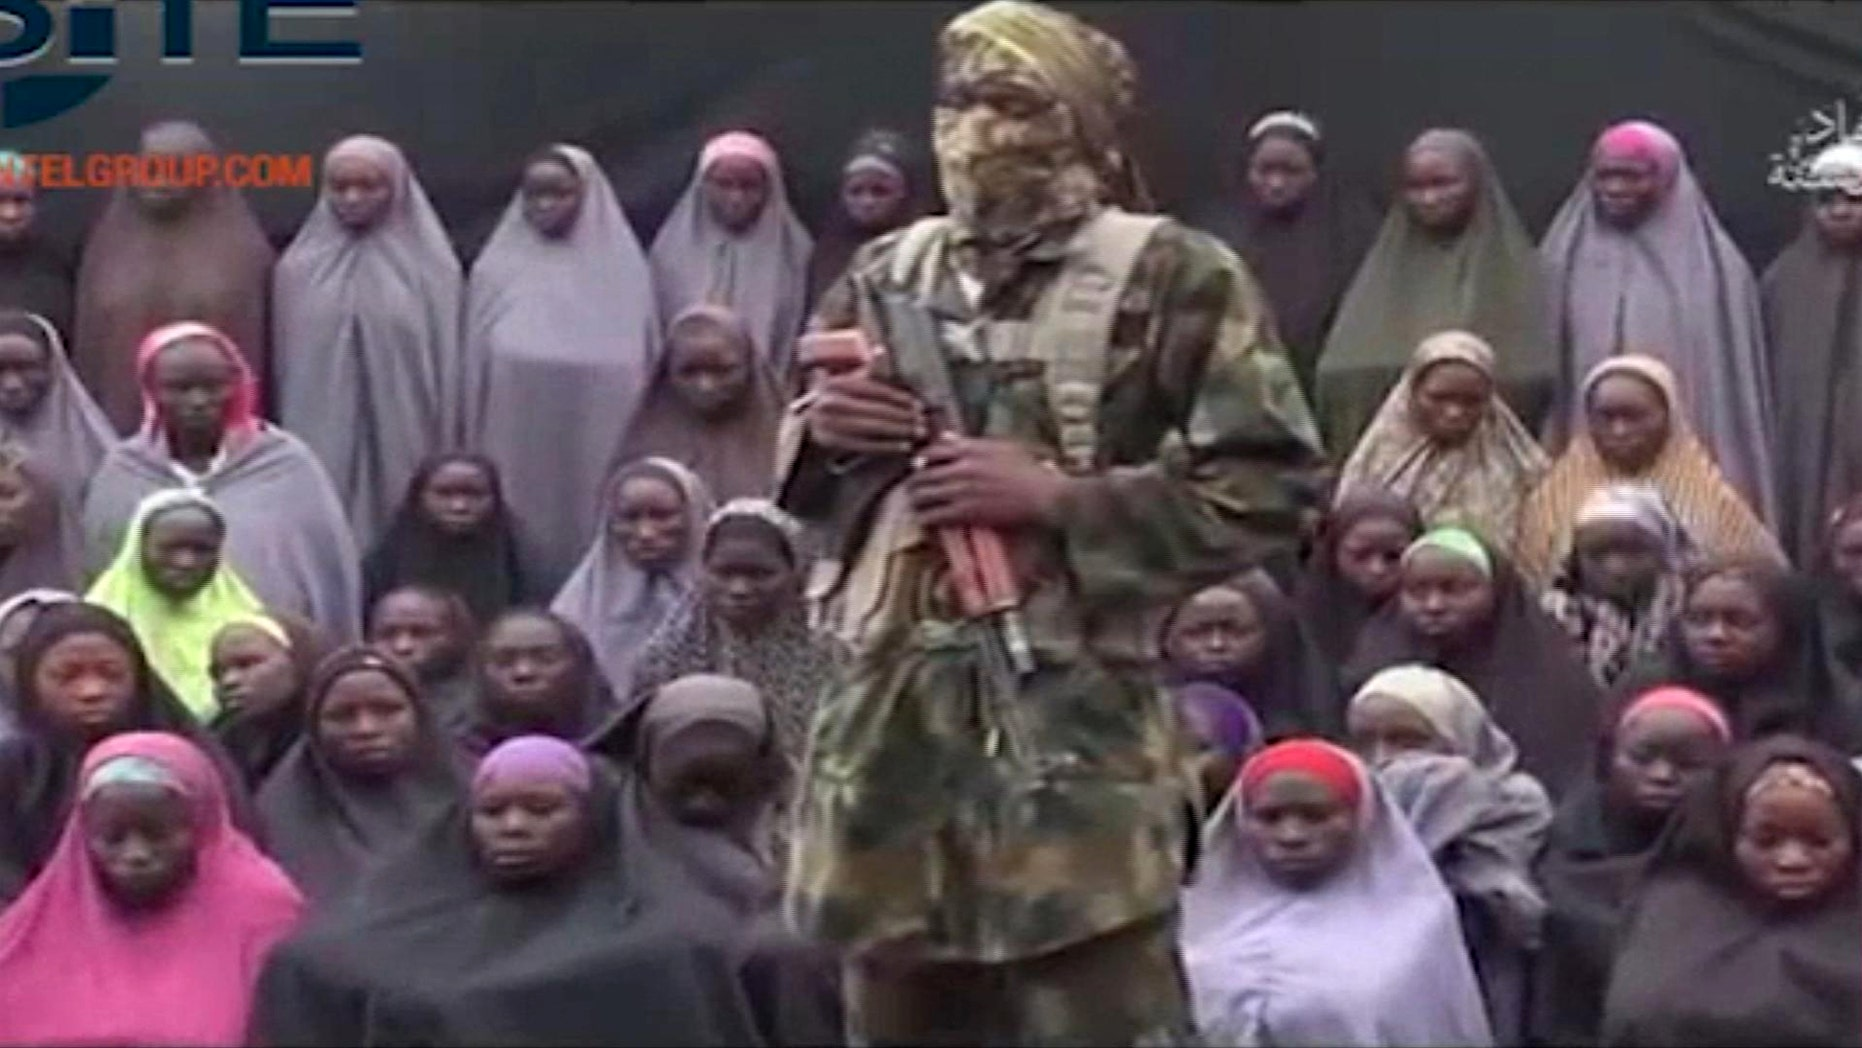 An alleged Boko Haram soldier stands in front of a group of girls alleged to be some of the 276 abducted Chibok schoolgirls held since April 2014, in an unknown location, in video distributed in August 2016.